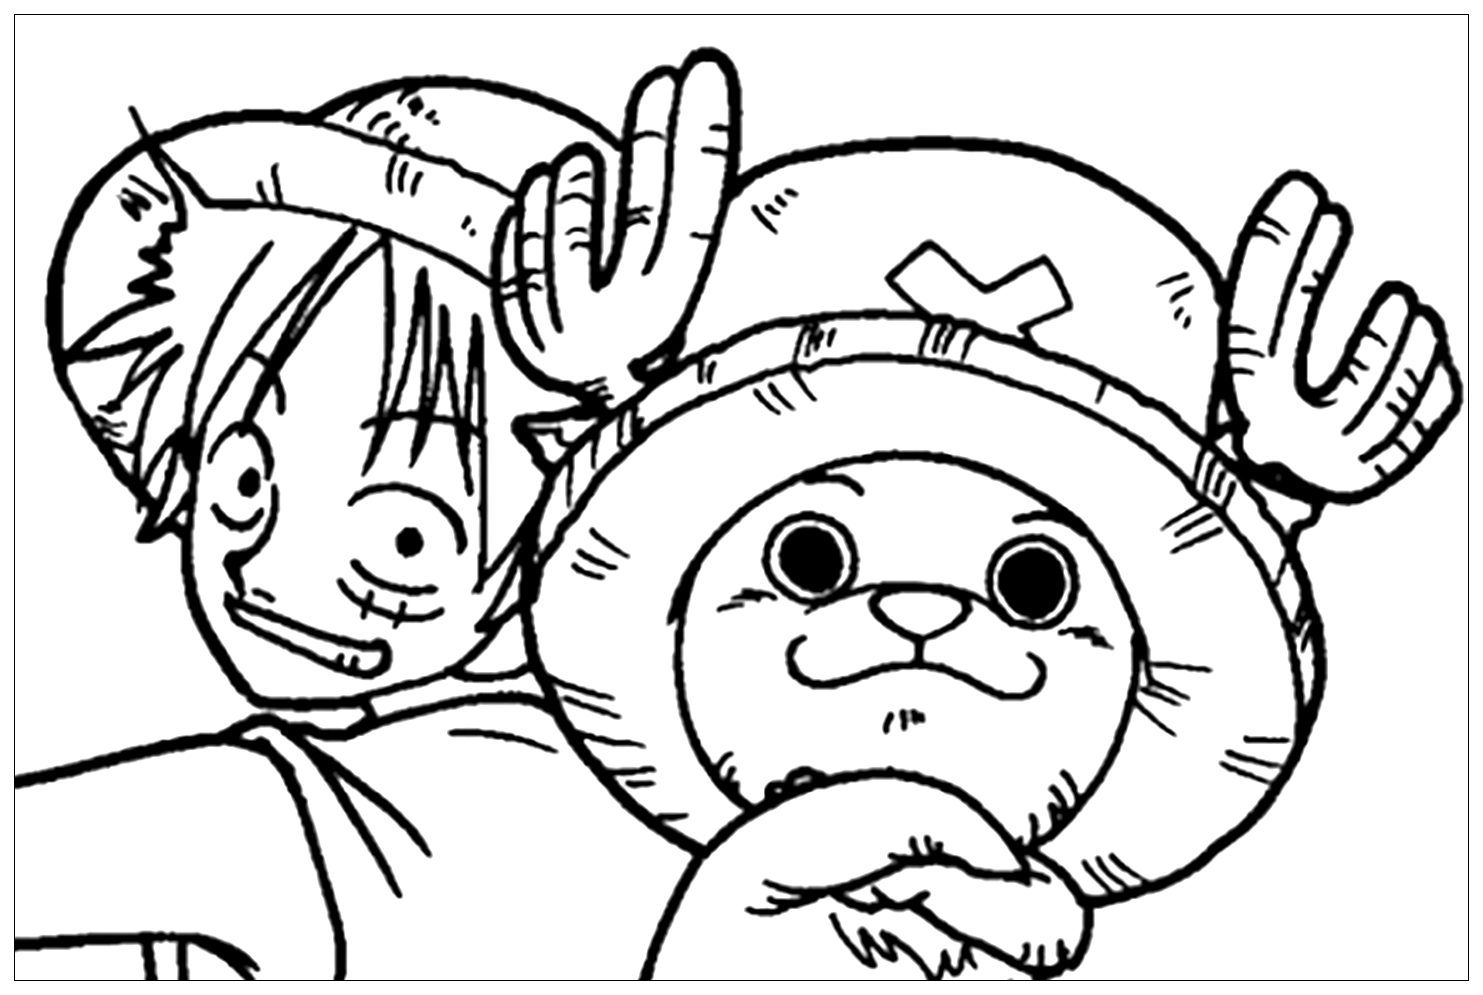 Funny One Piece coloring page for kids